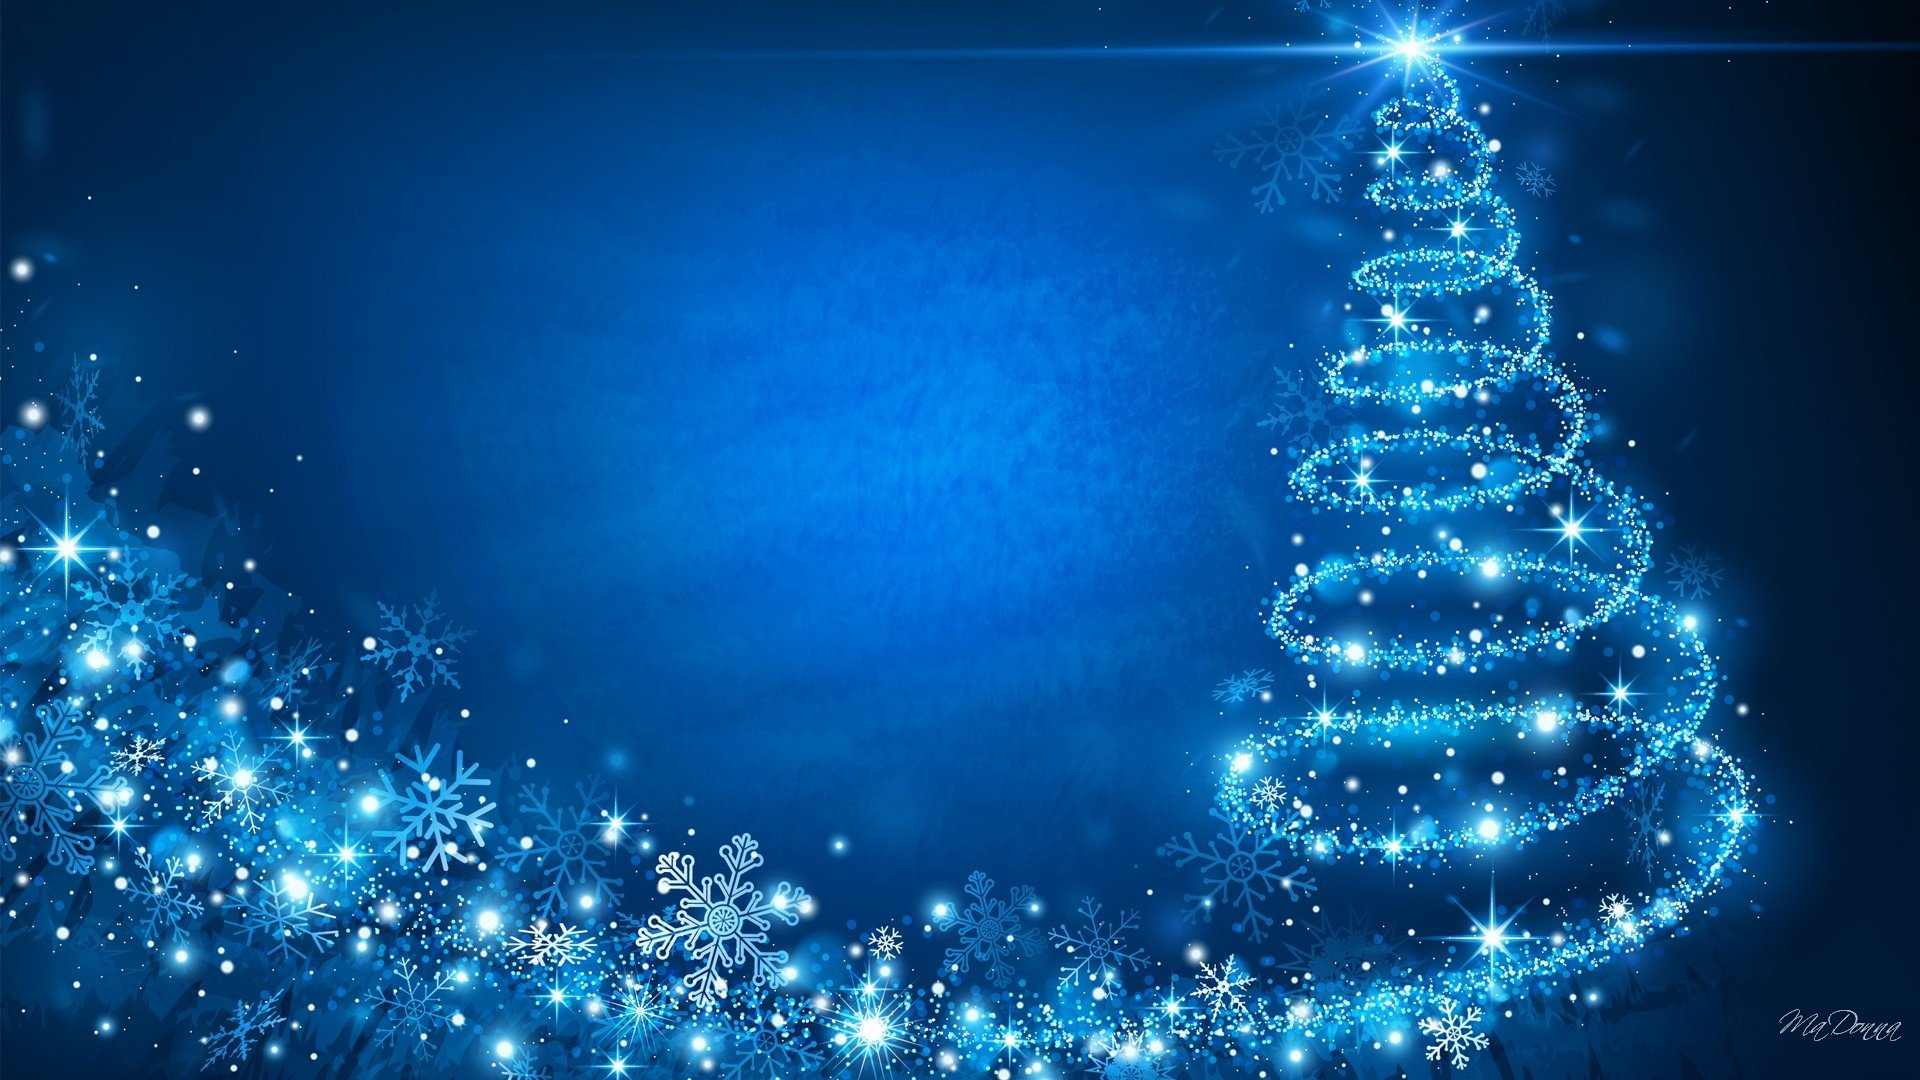 72 Blue Christmas Wallpapers on WallpaperPlay 1920x1080